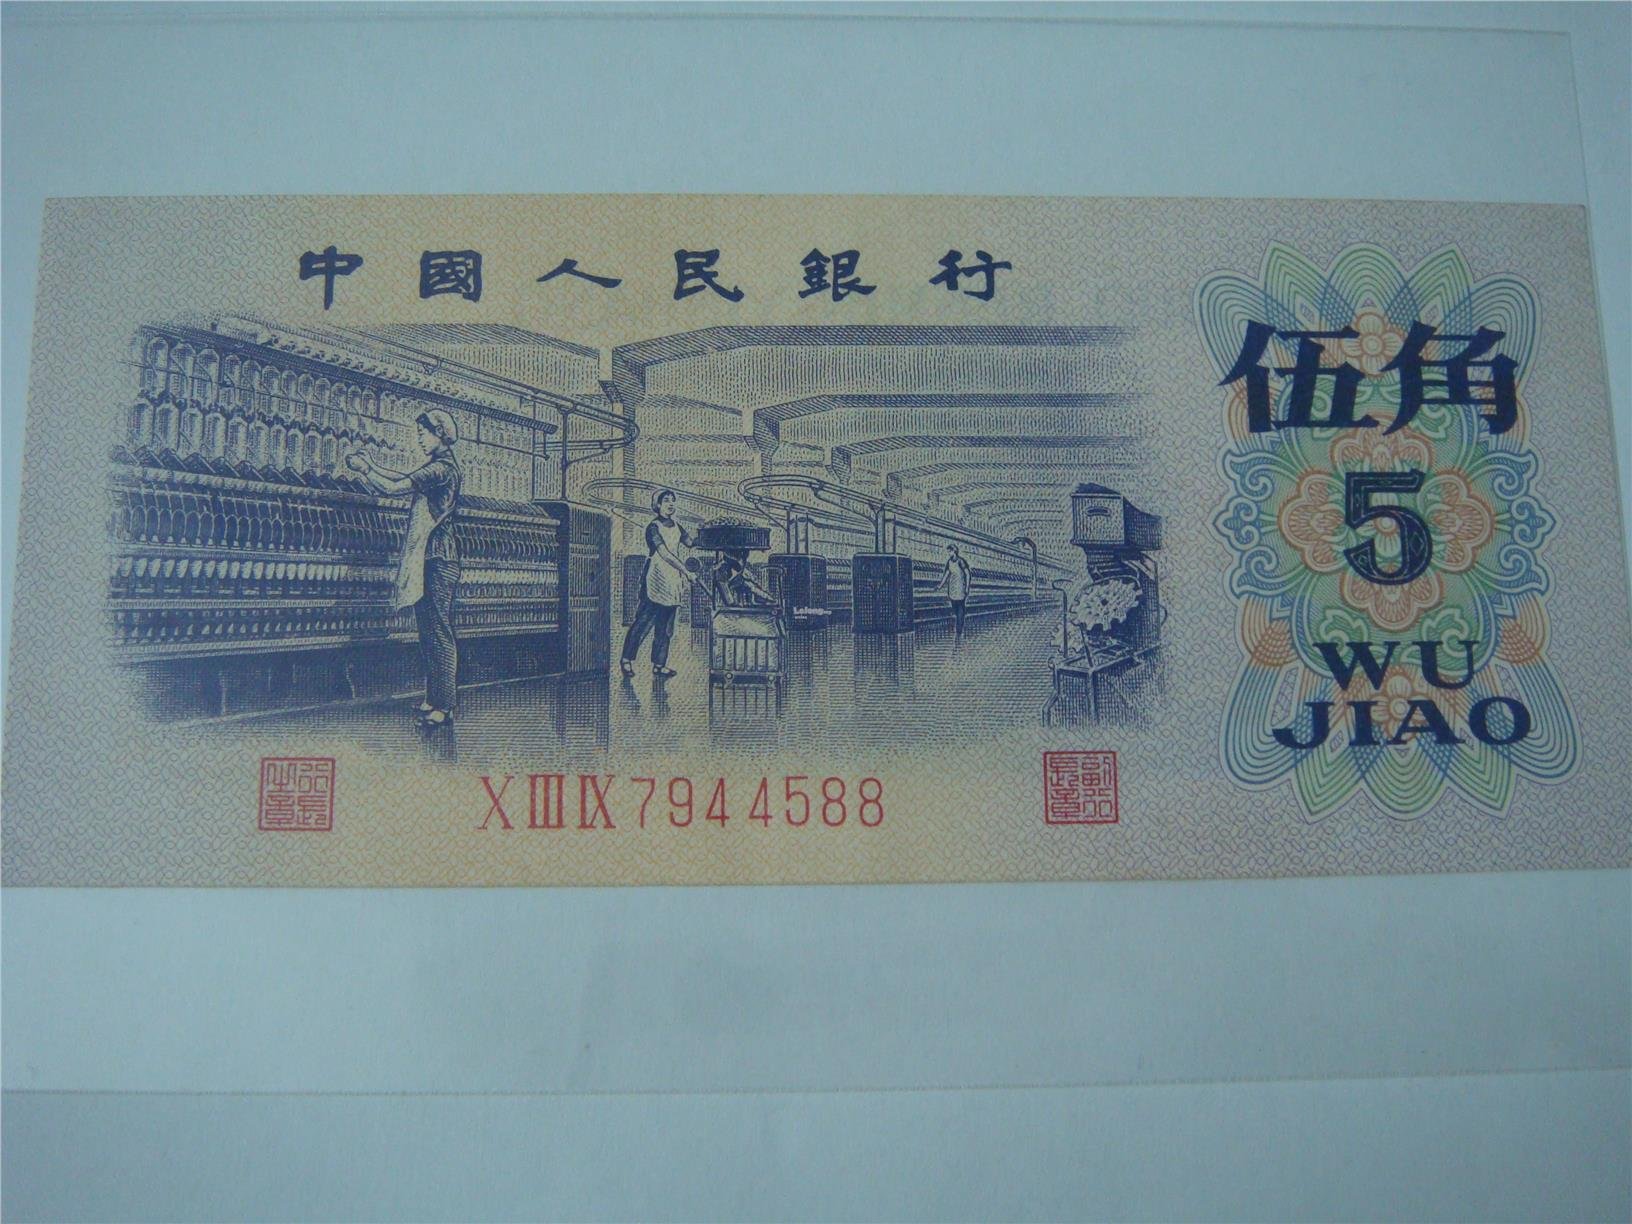 (BN 0129) 1972 China 5 Jiao,Lithographed,w/stars watermark